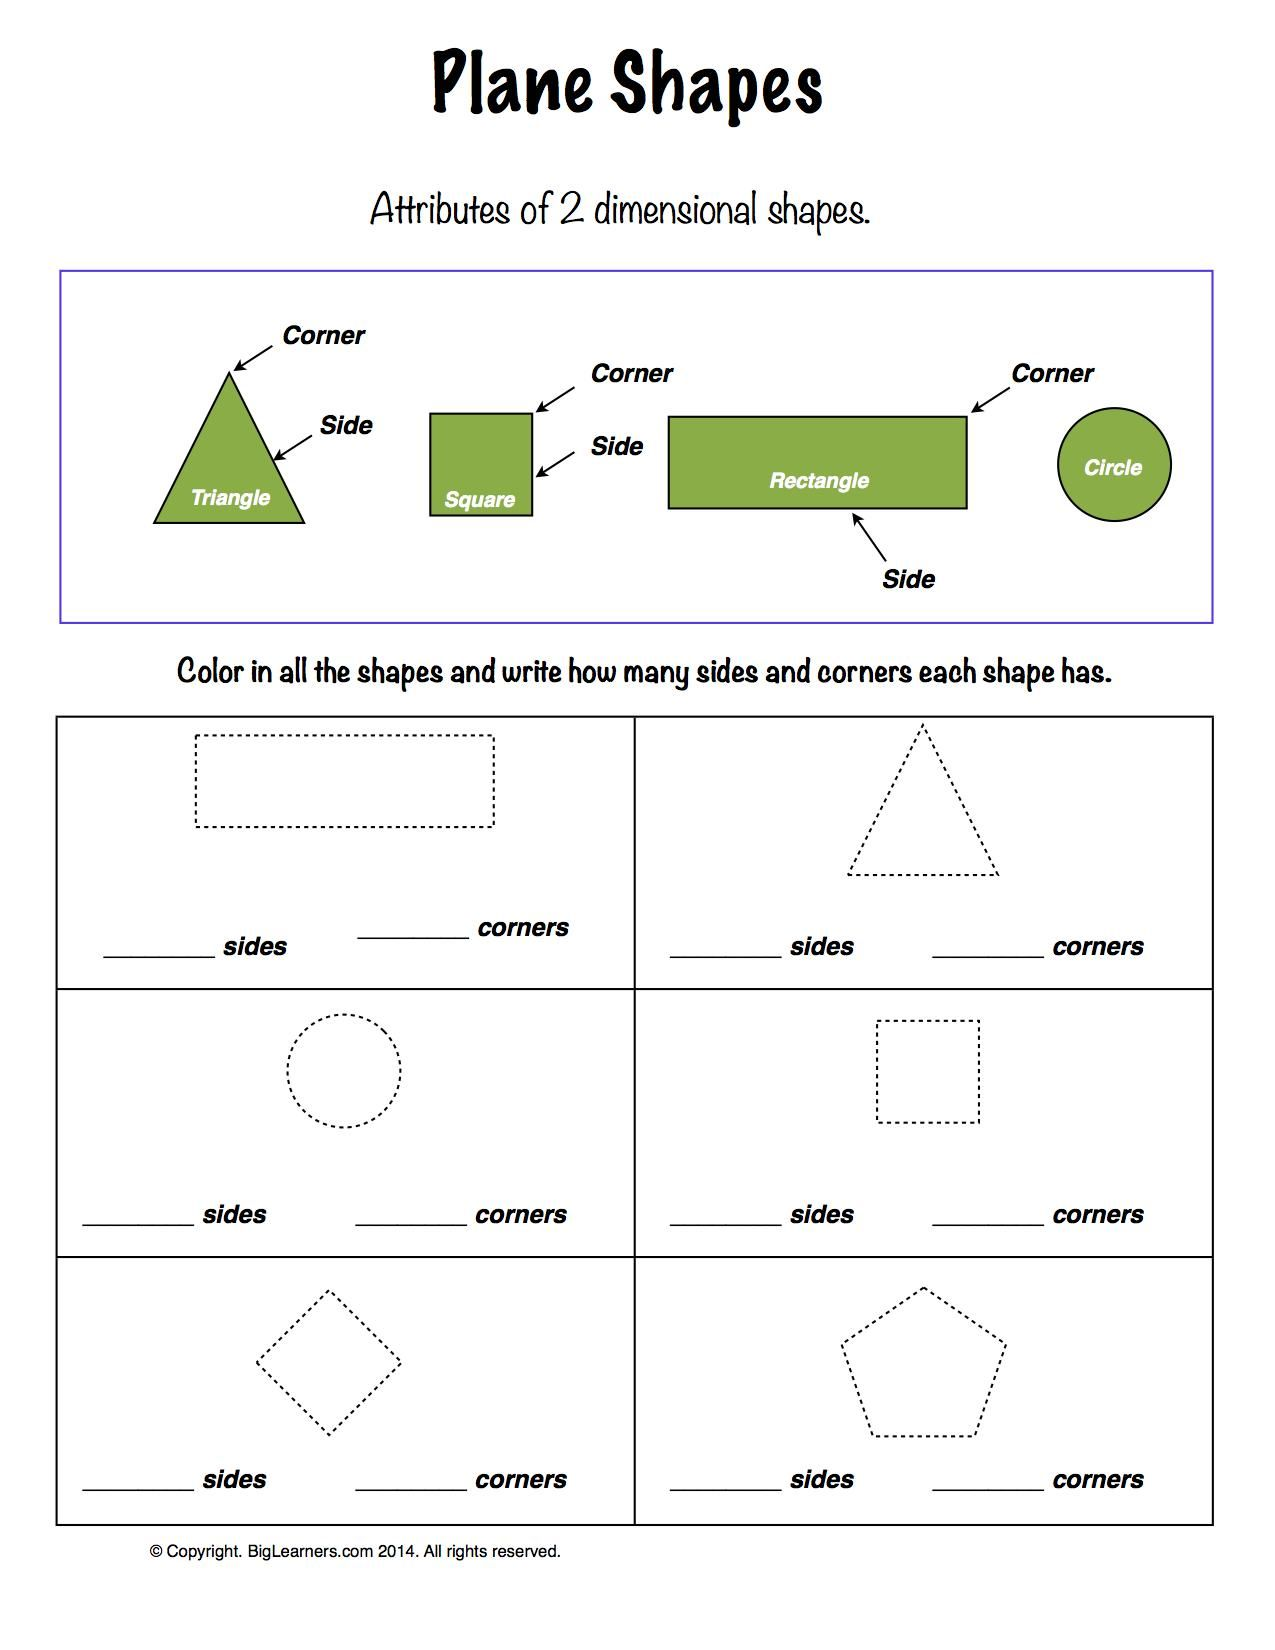 worksheet Solid And Plane Shapes Worksheets worksheet plane shapes learn about the attributes of shapes